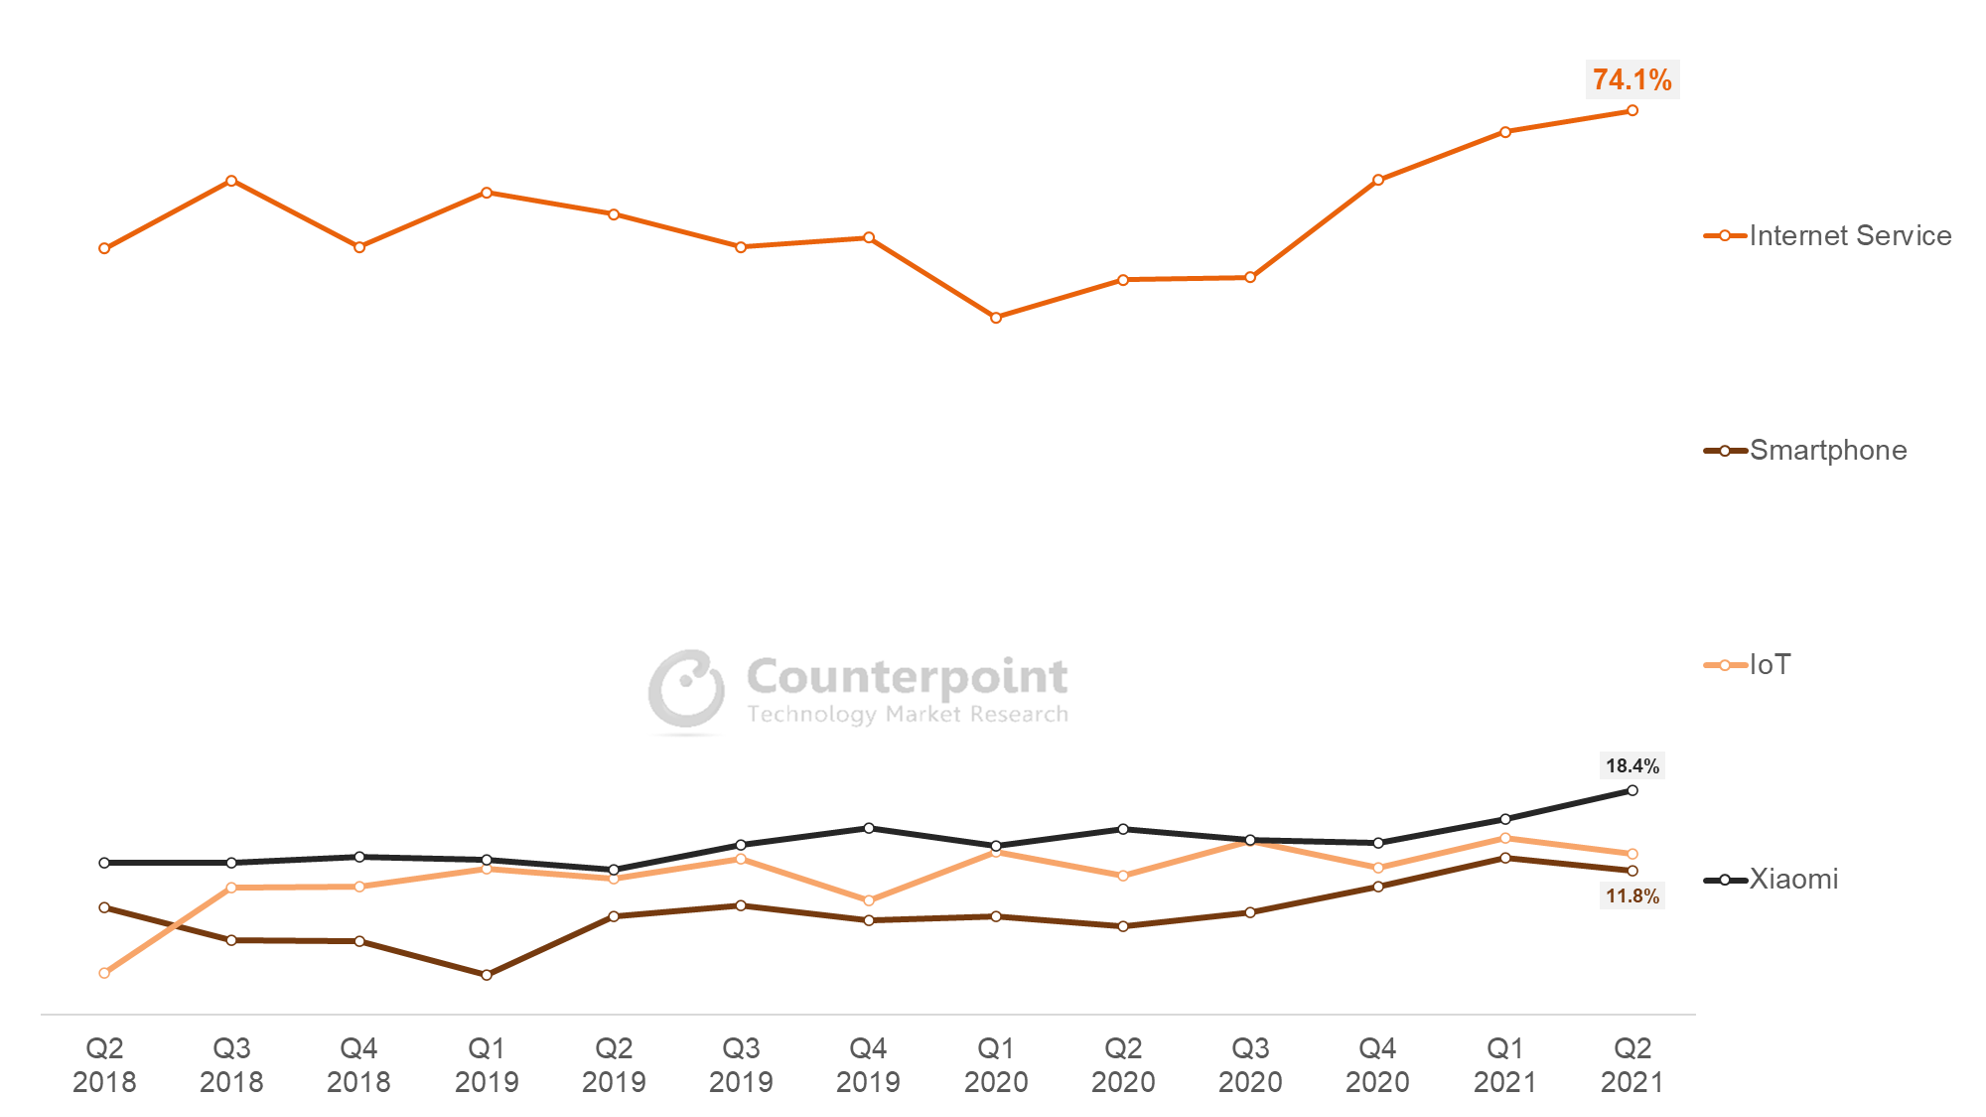 Counterpoint Research Gross Profit Margins of Xiaomi and its Business Units